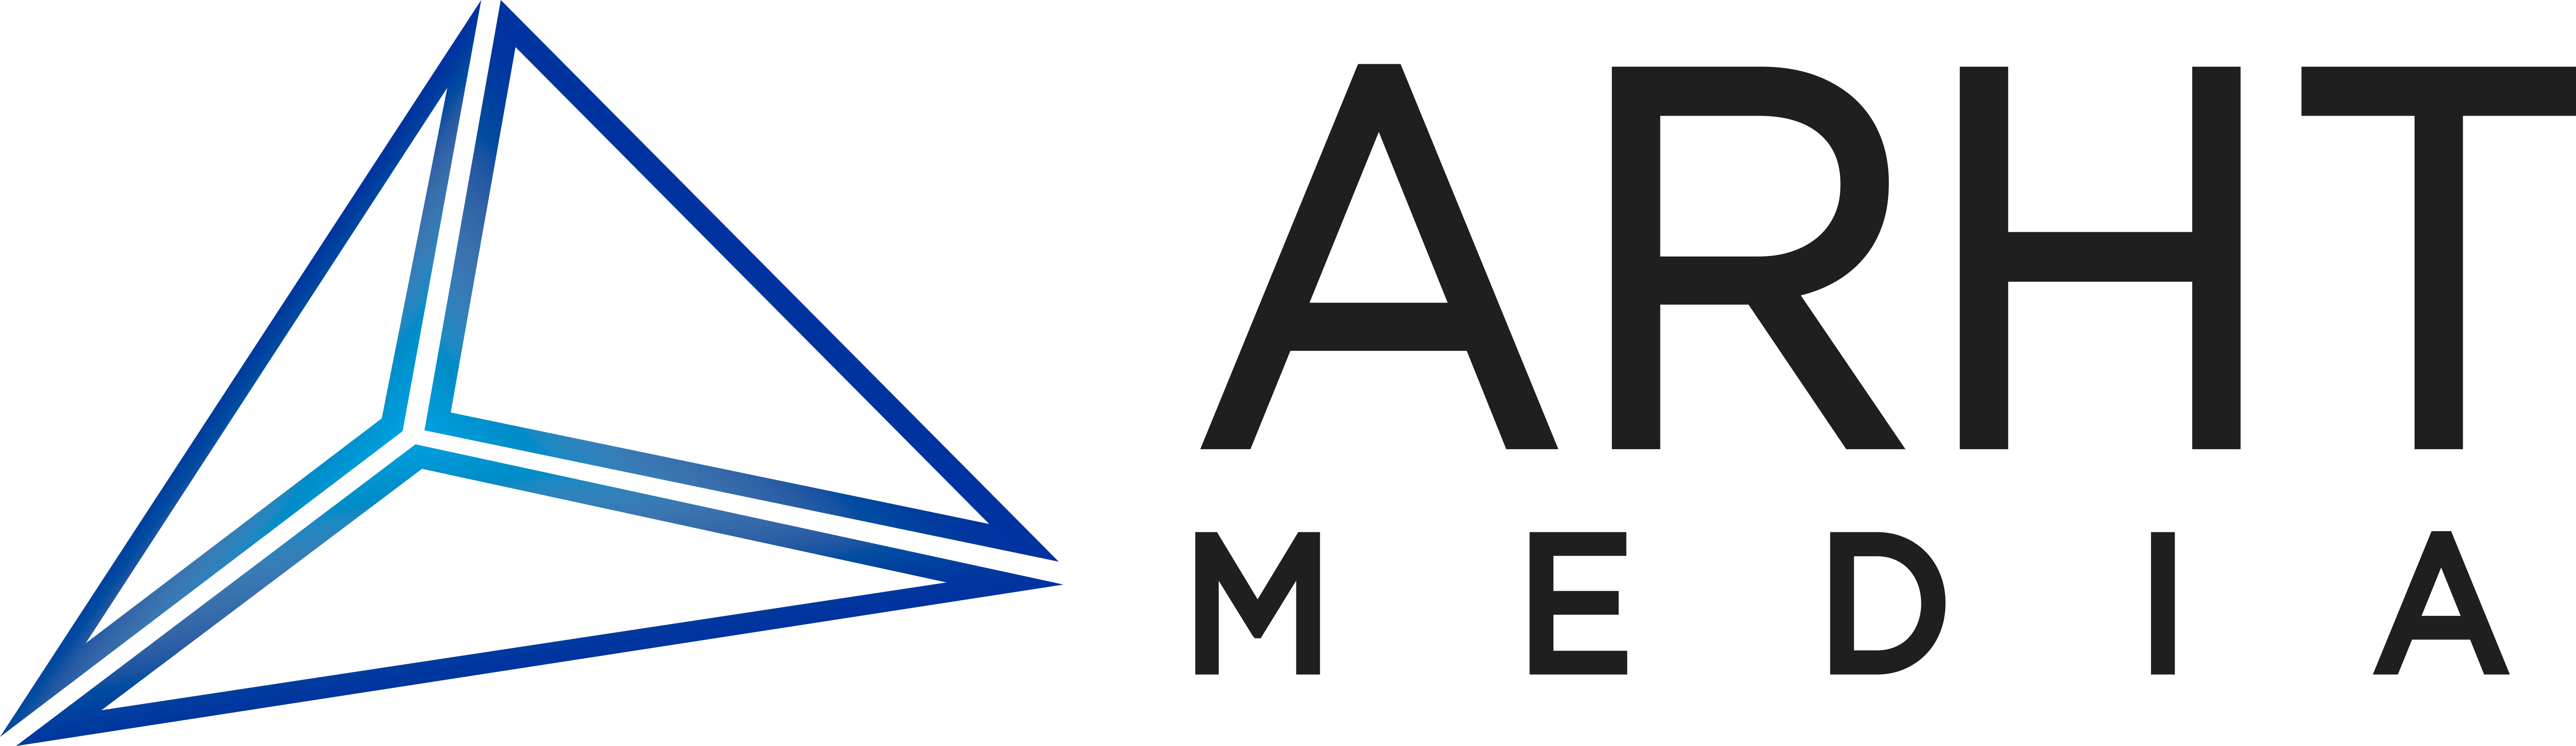 ARHT Media Announces Closing of Oversubscribed Private Placement